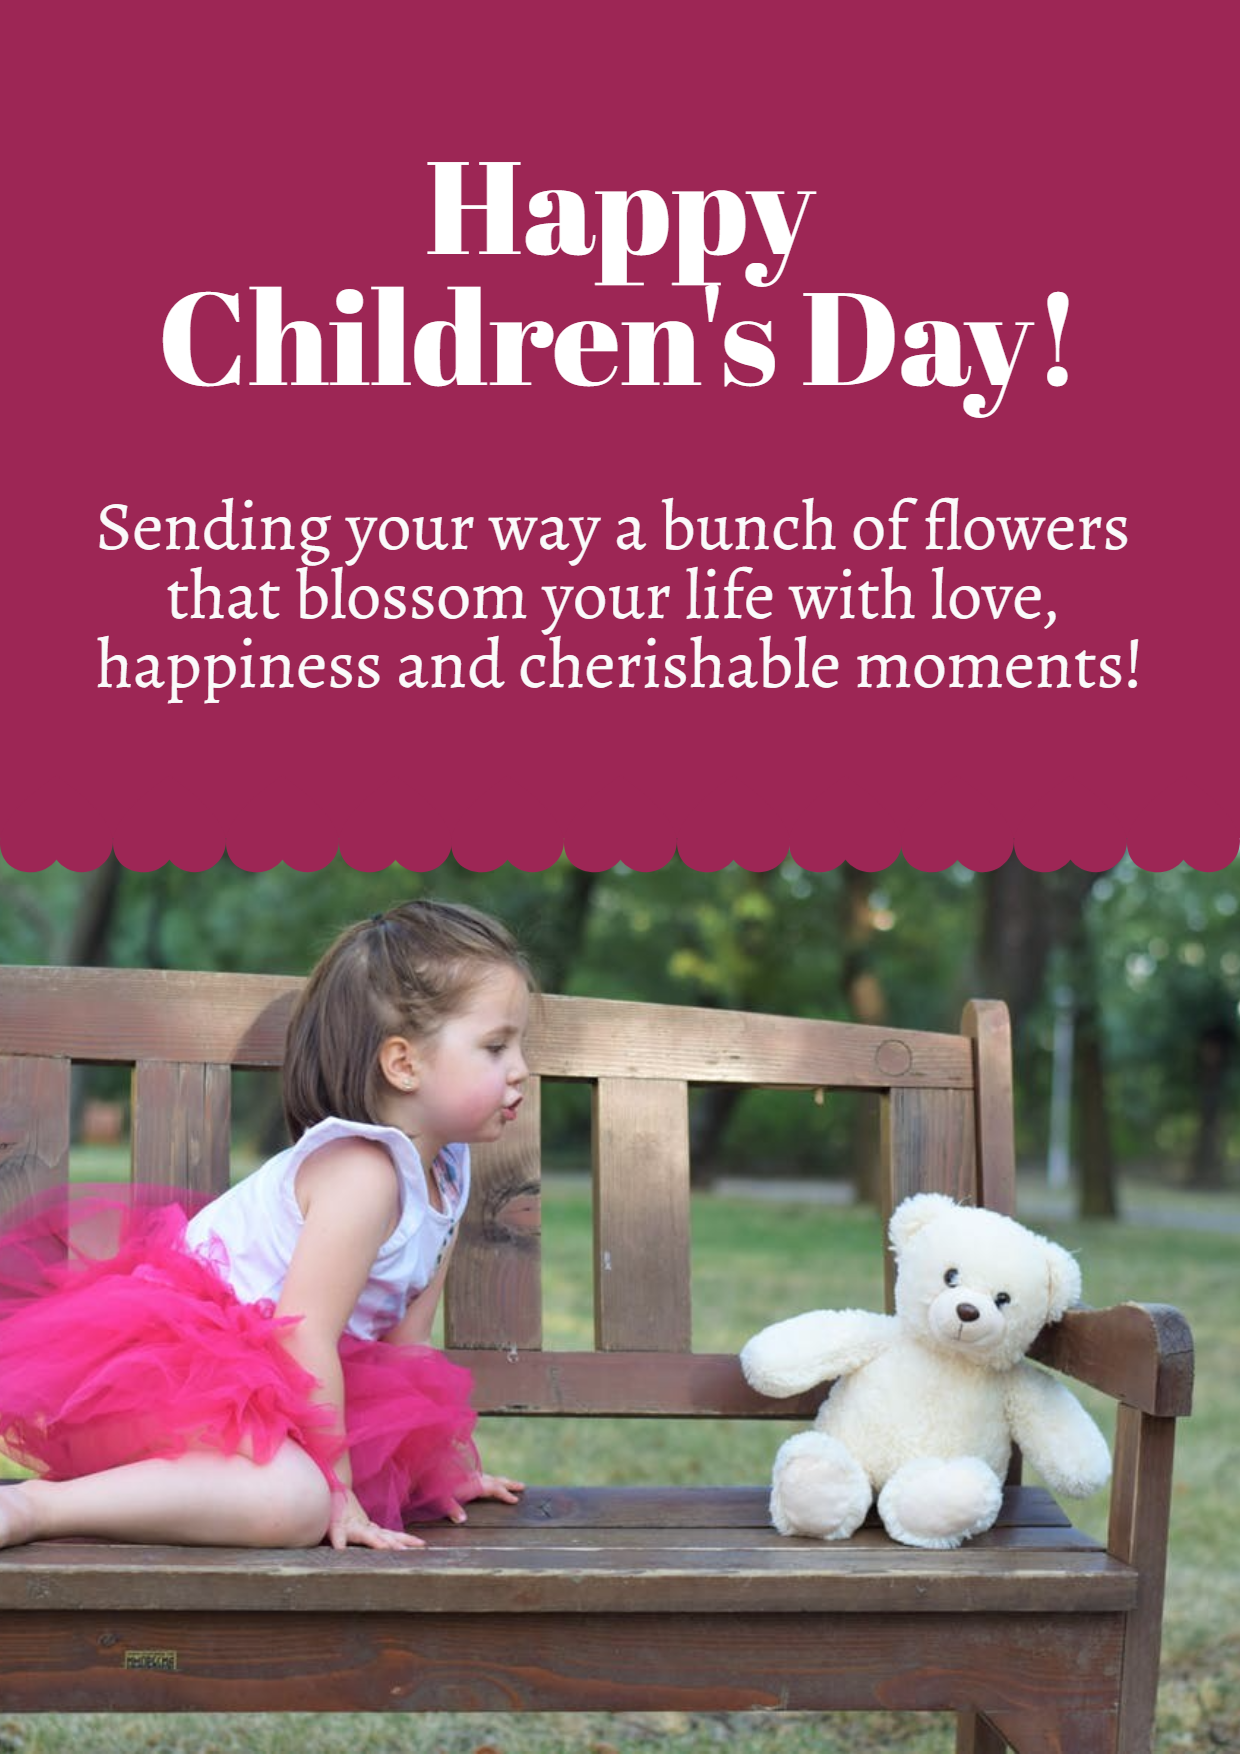 Happy Childrens Day Children Image Customize Download It For